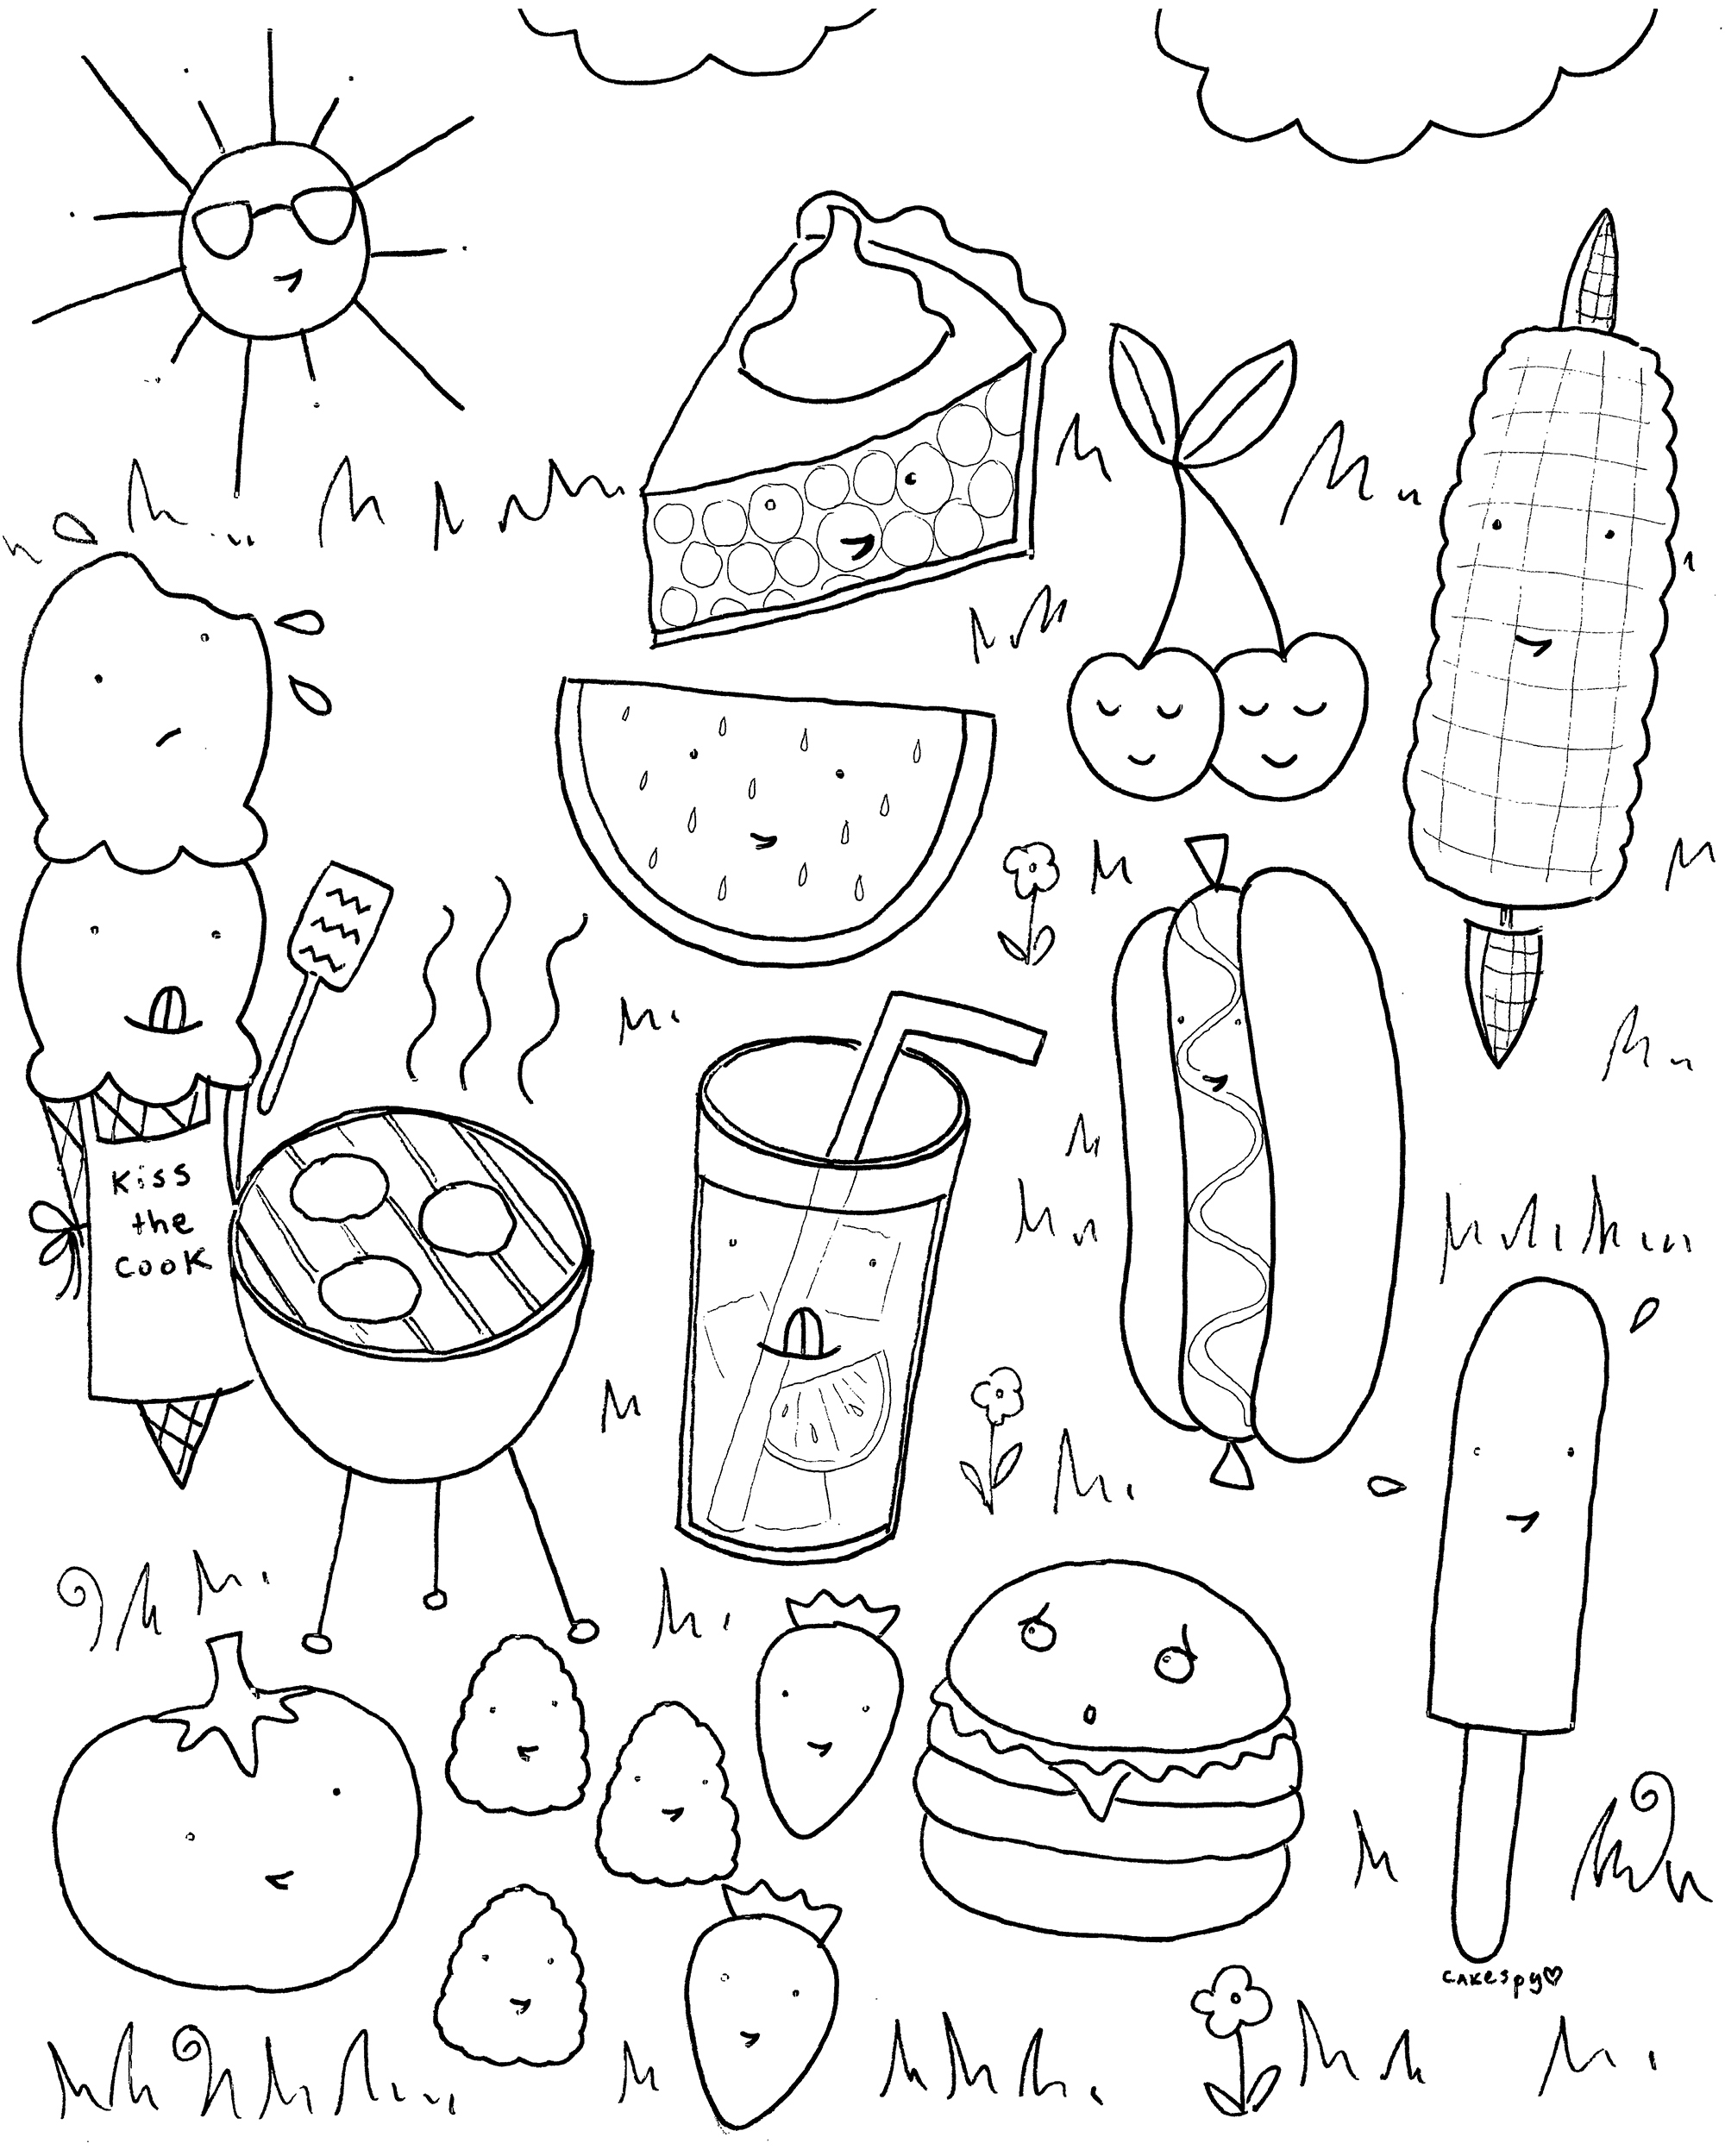 2000x2500 Awesome Kids Coloring Pages Bbq Gallery Great Collection